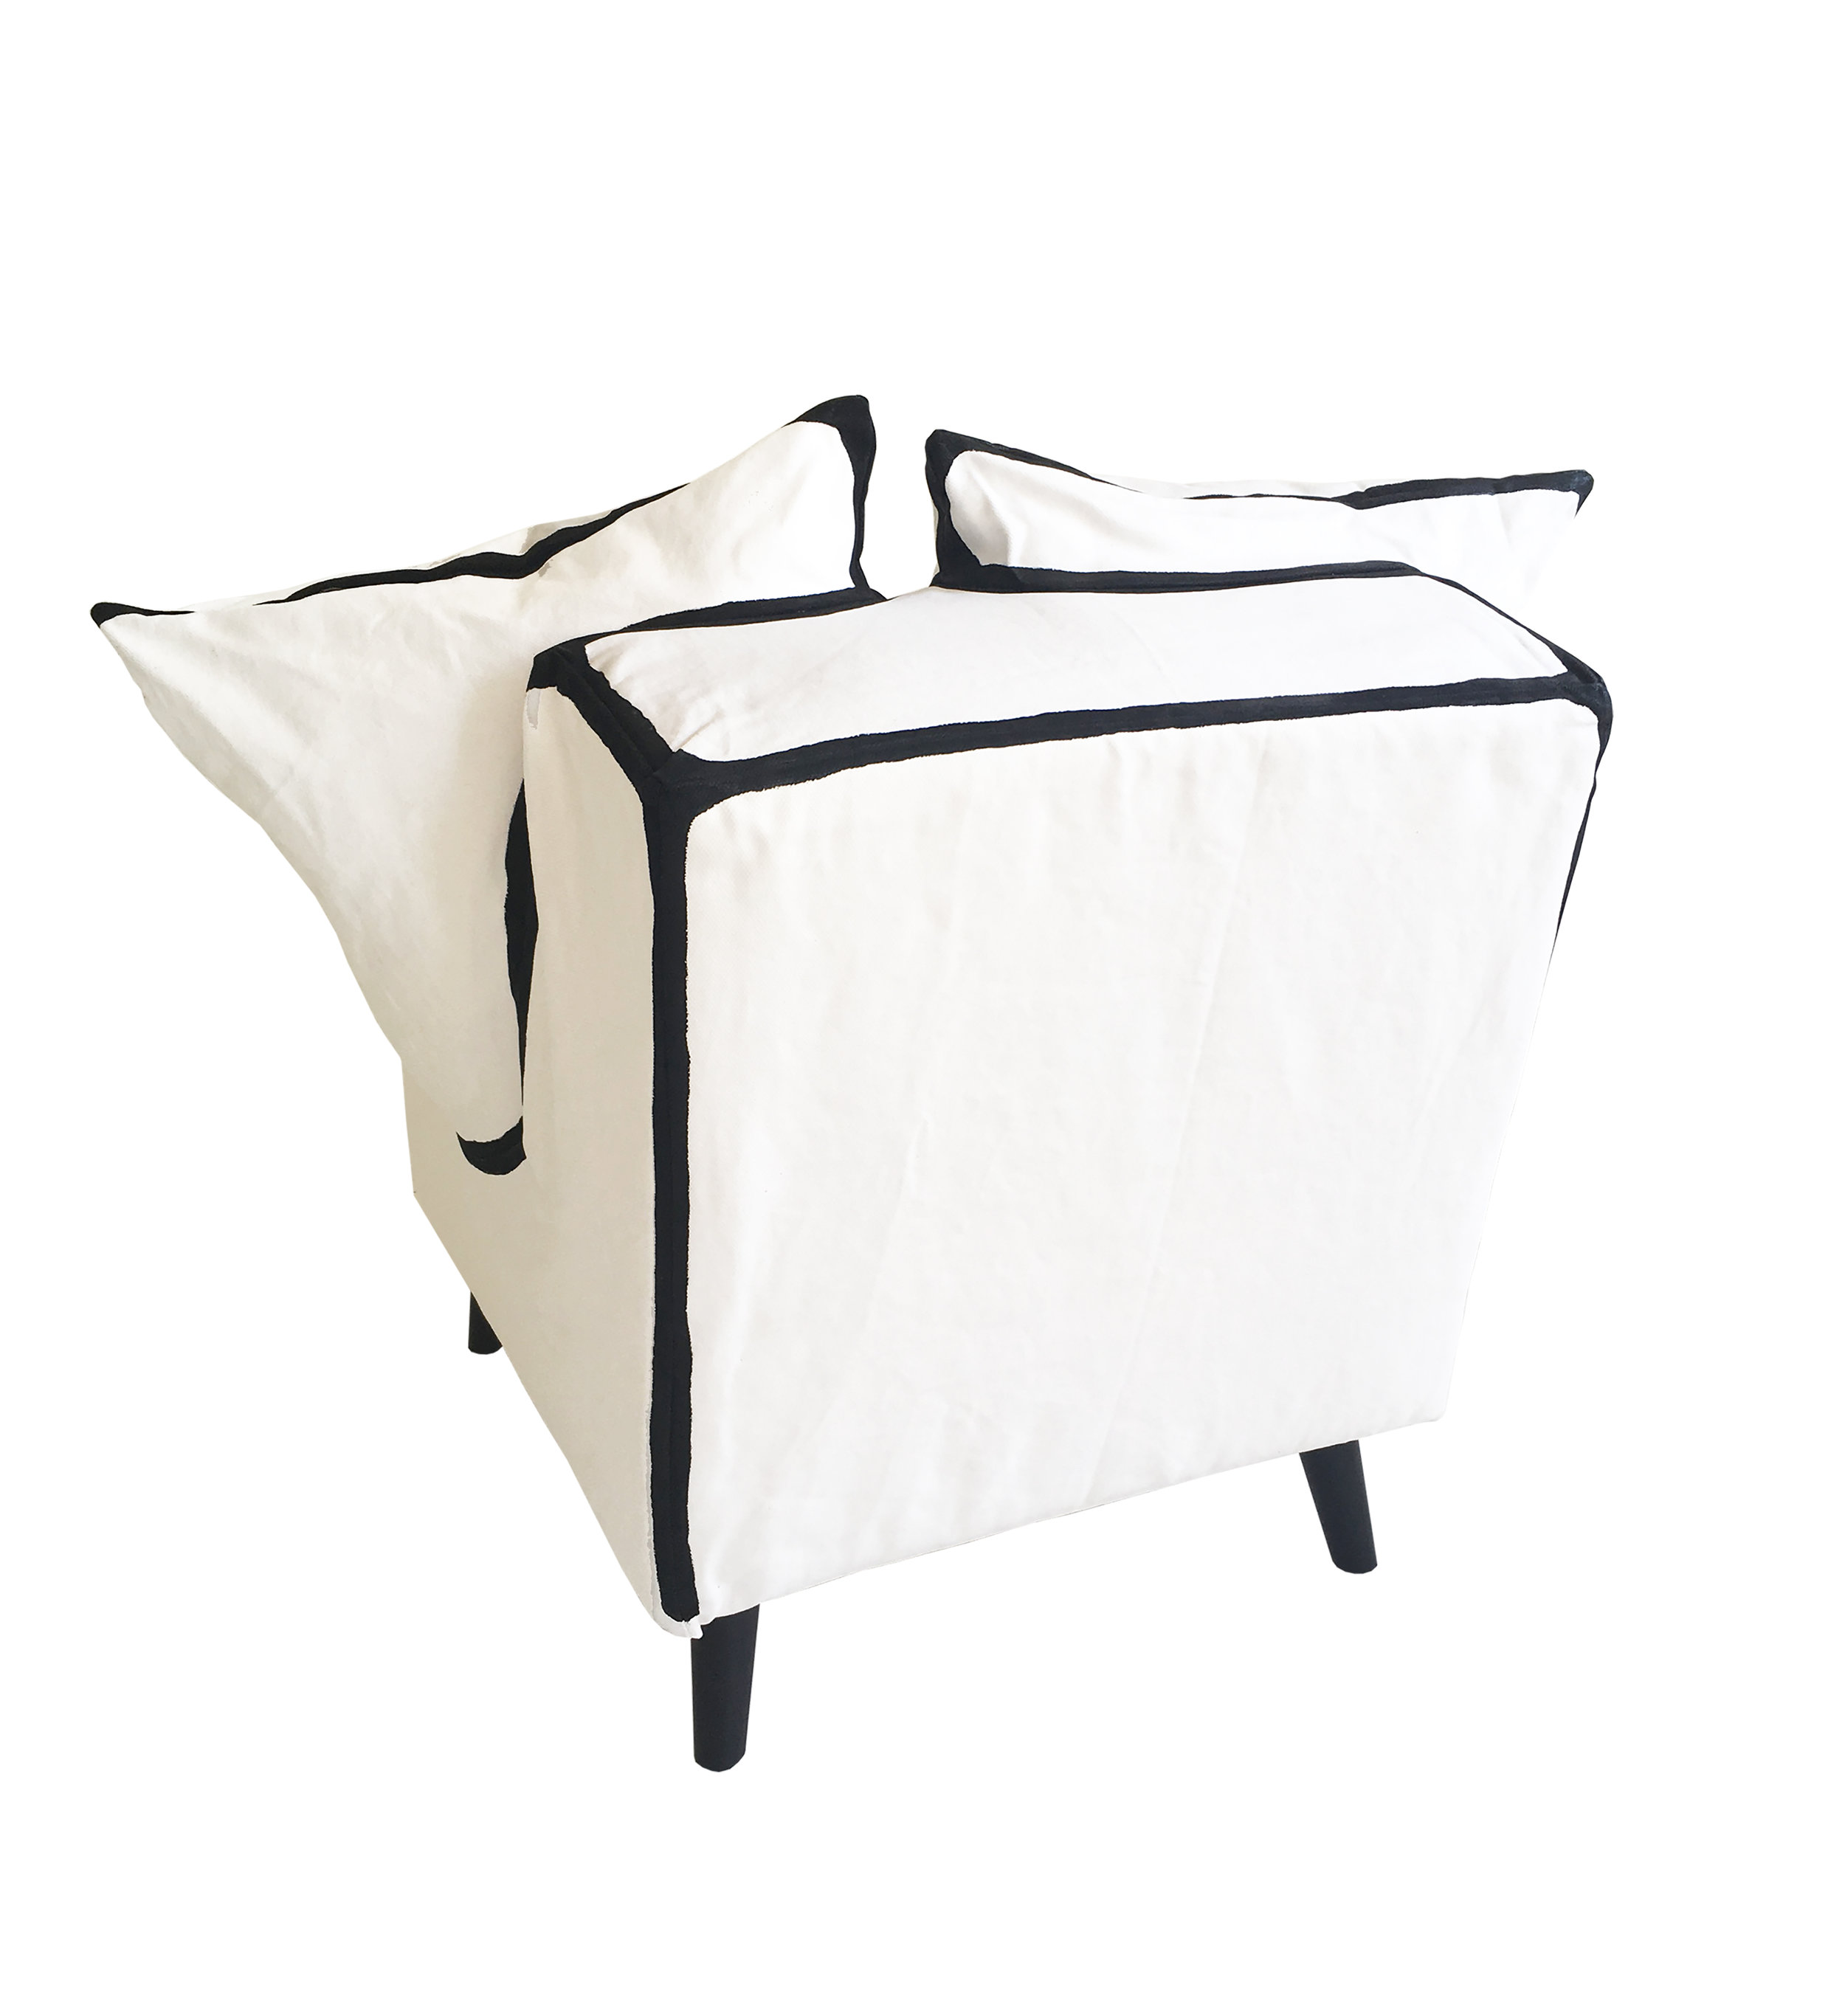 Low chair White 4.jpg